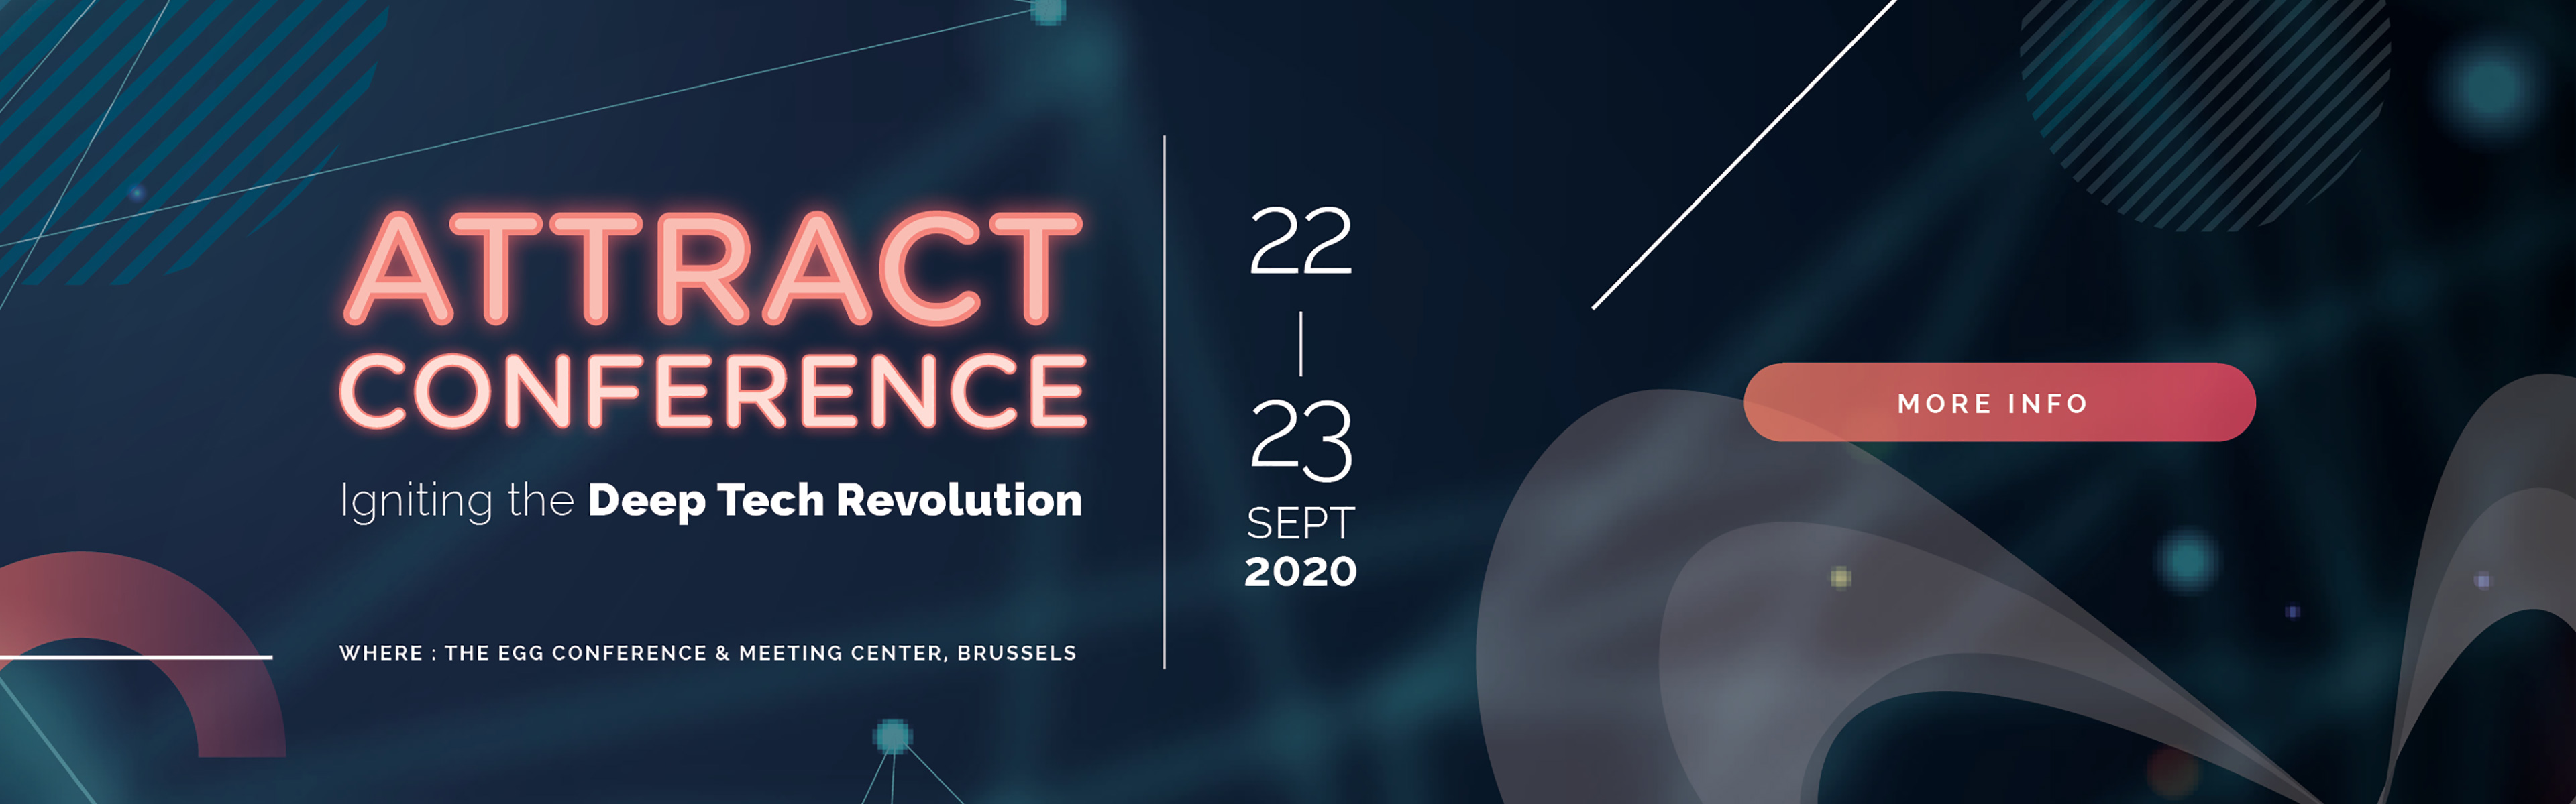 Attract Conference: Igniting the Deep Tech Revolution / 22 - 23 September 2020 - The Egg Conference & Meeting Center, Brussels